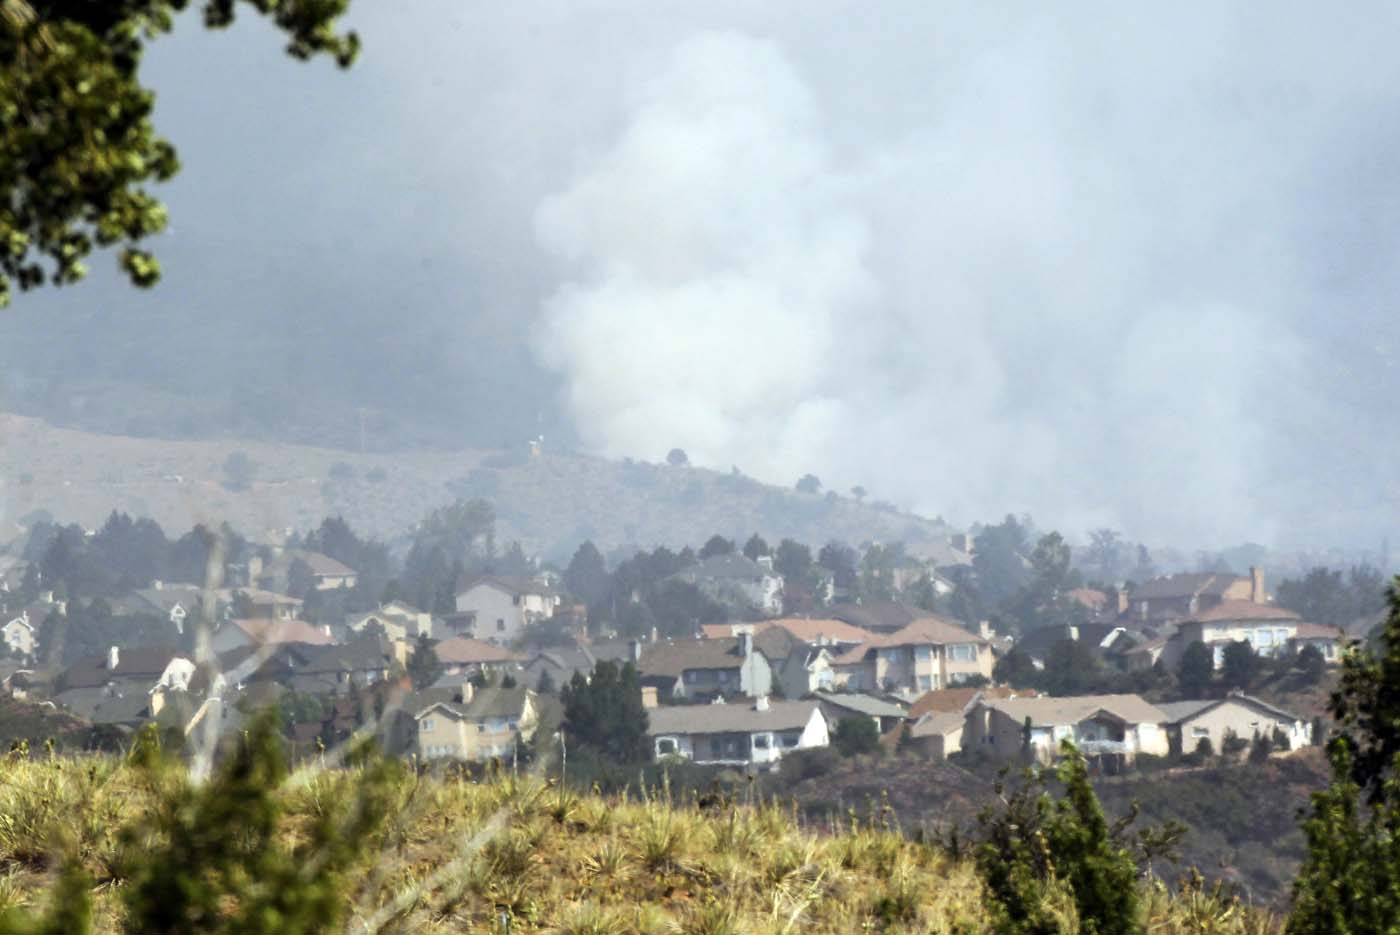 JUNE 27: Smoke rises behind a neighborhood in the Waldo Canyon fire west of Colorado Springs, Colorado June 27, 2012. (Rick Wilking/Reuters)